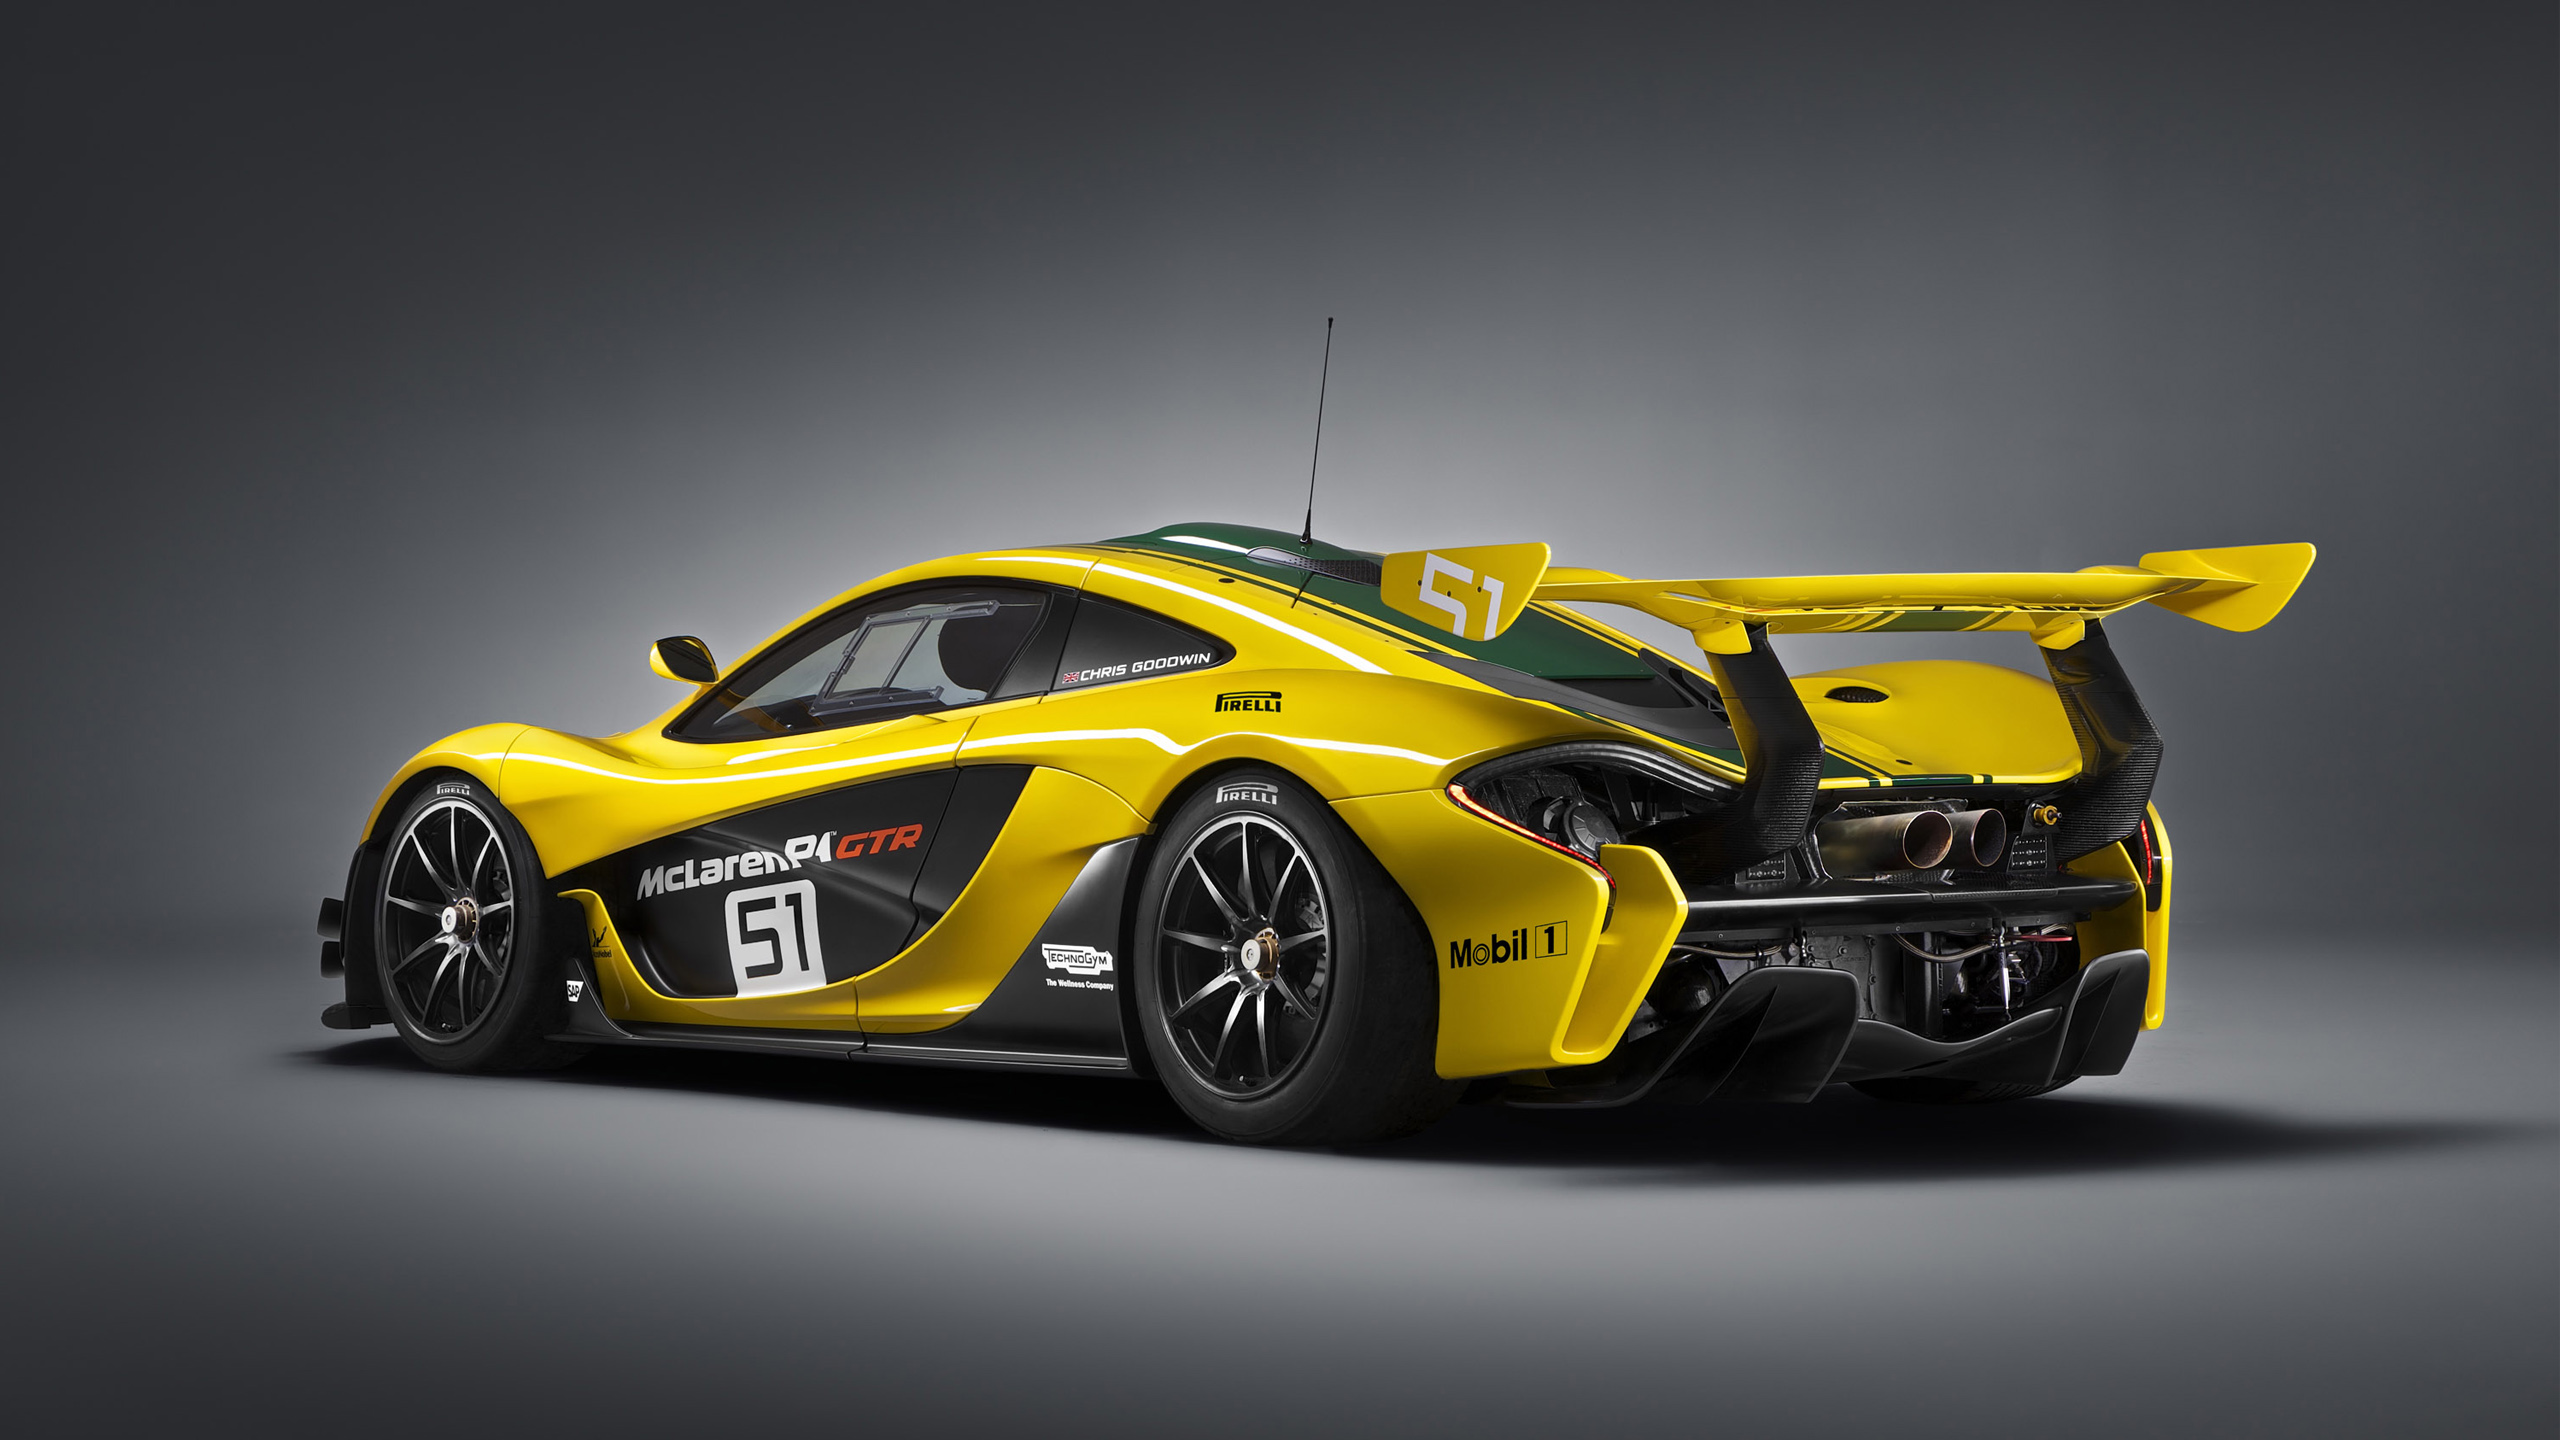 2015 mclaren p1 gtr limited edition 3 wallpaper hd car